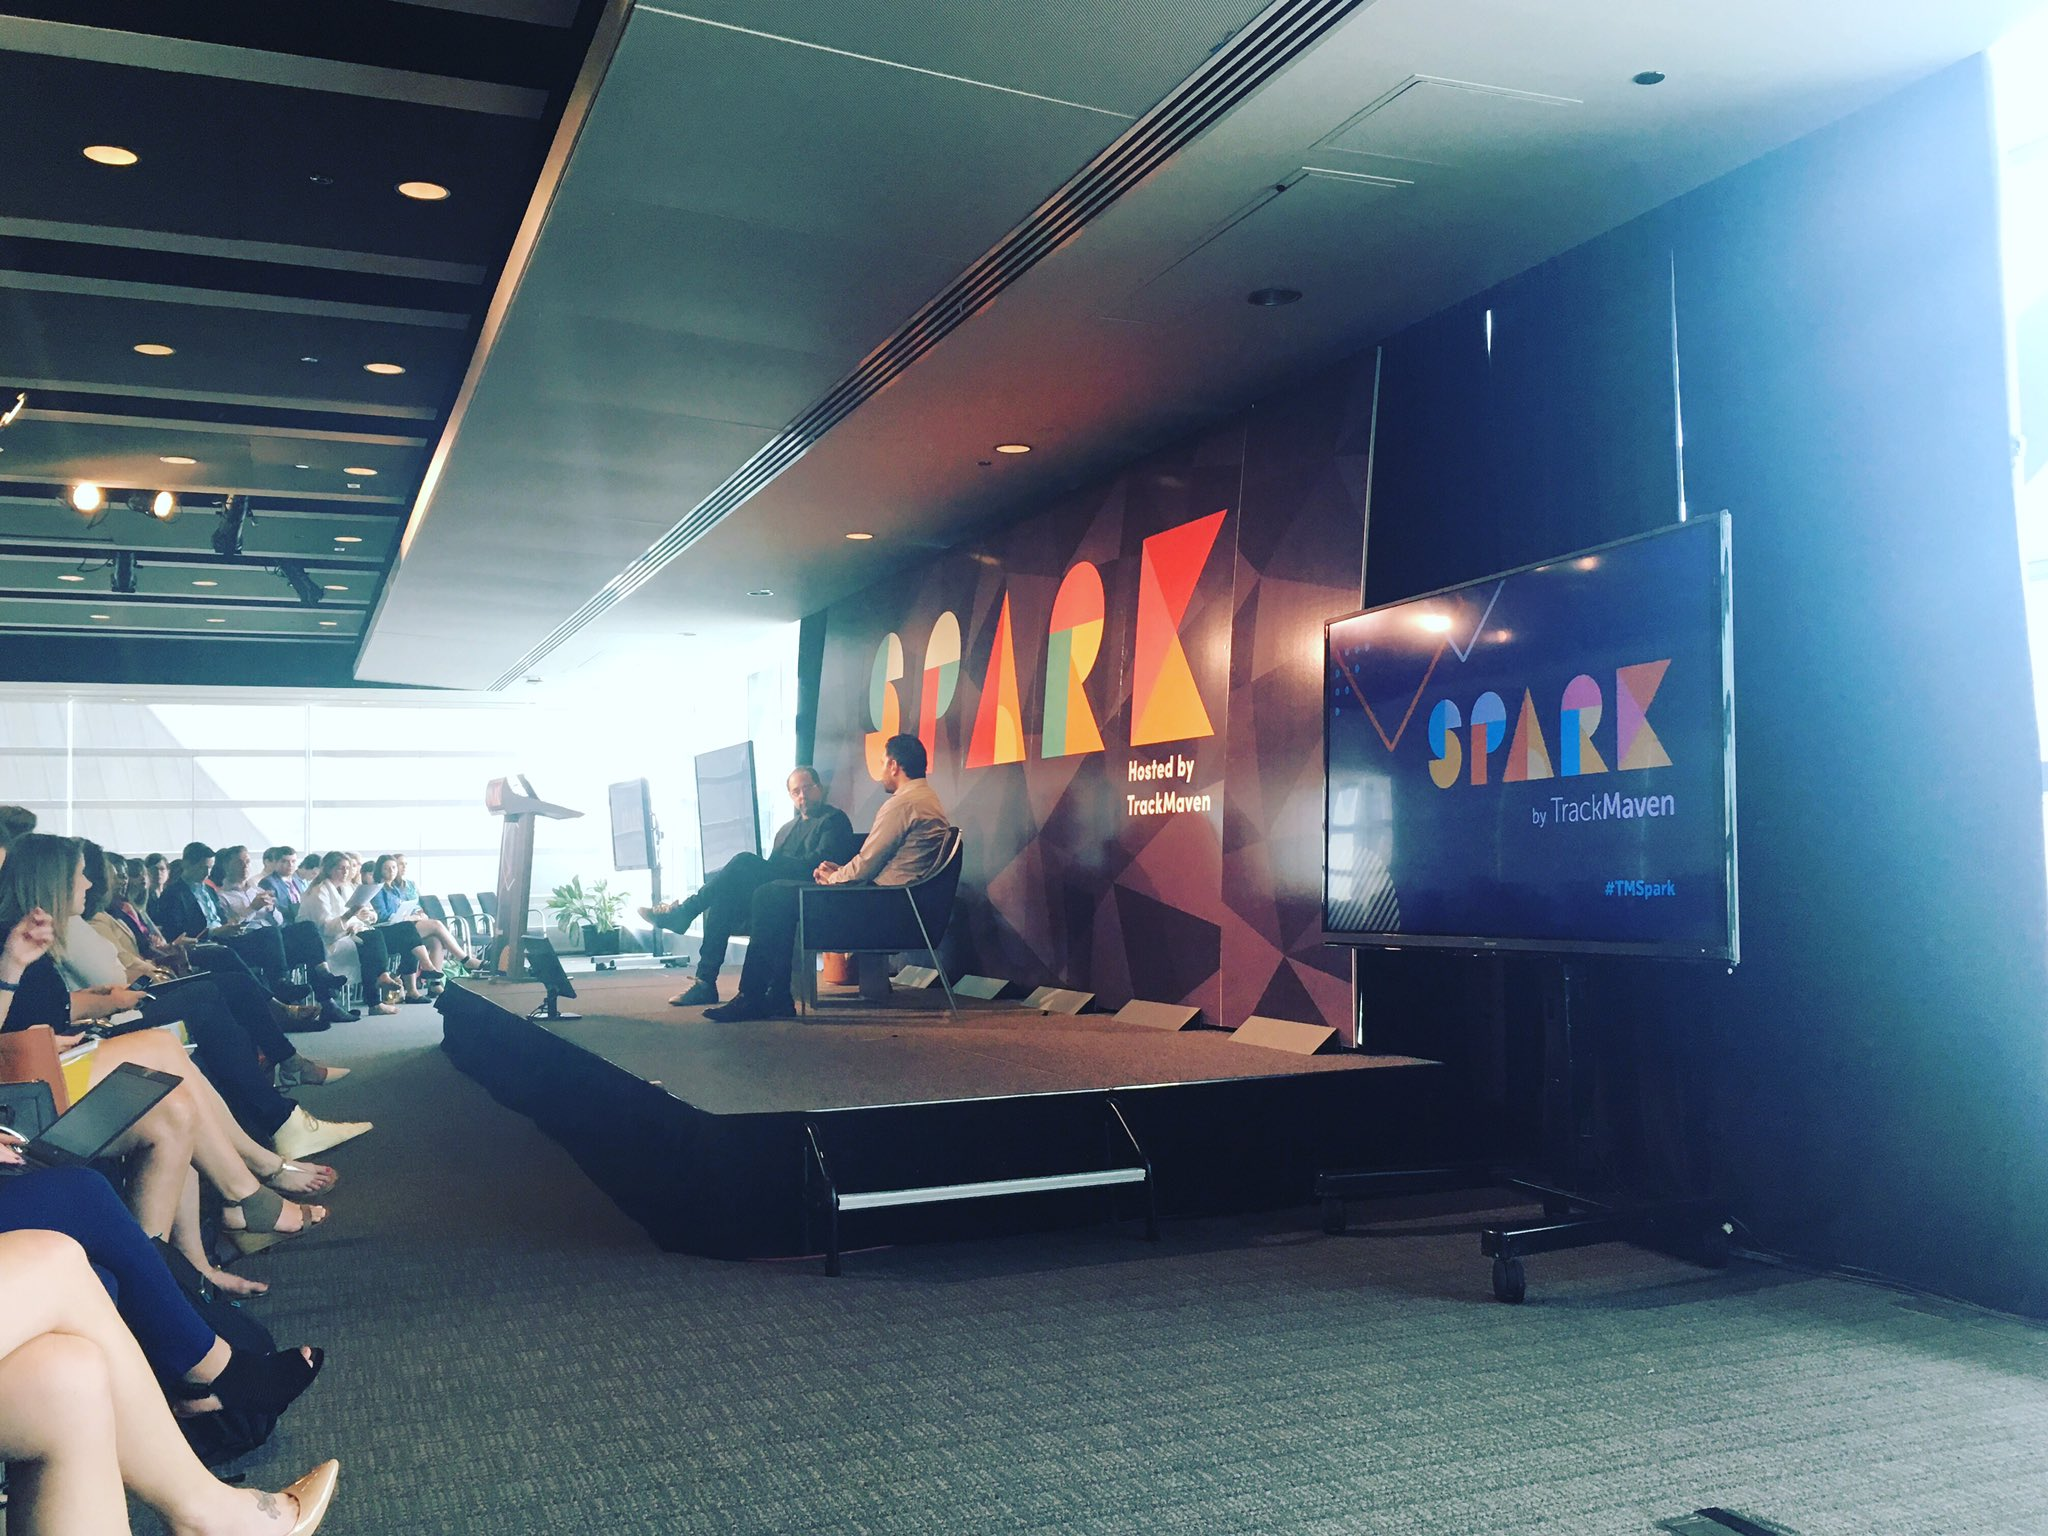 First important question to discuss: is all the data deluge in marketing total bullshit or? #TMSpark https://t.co/PkAN4zKjxh